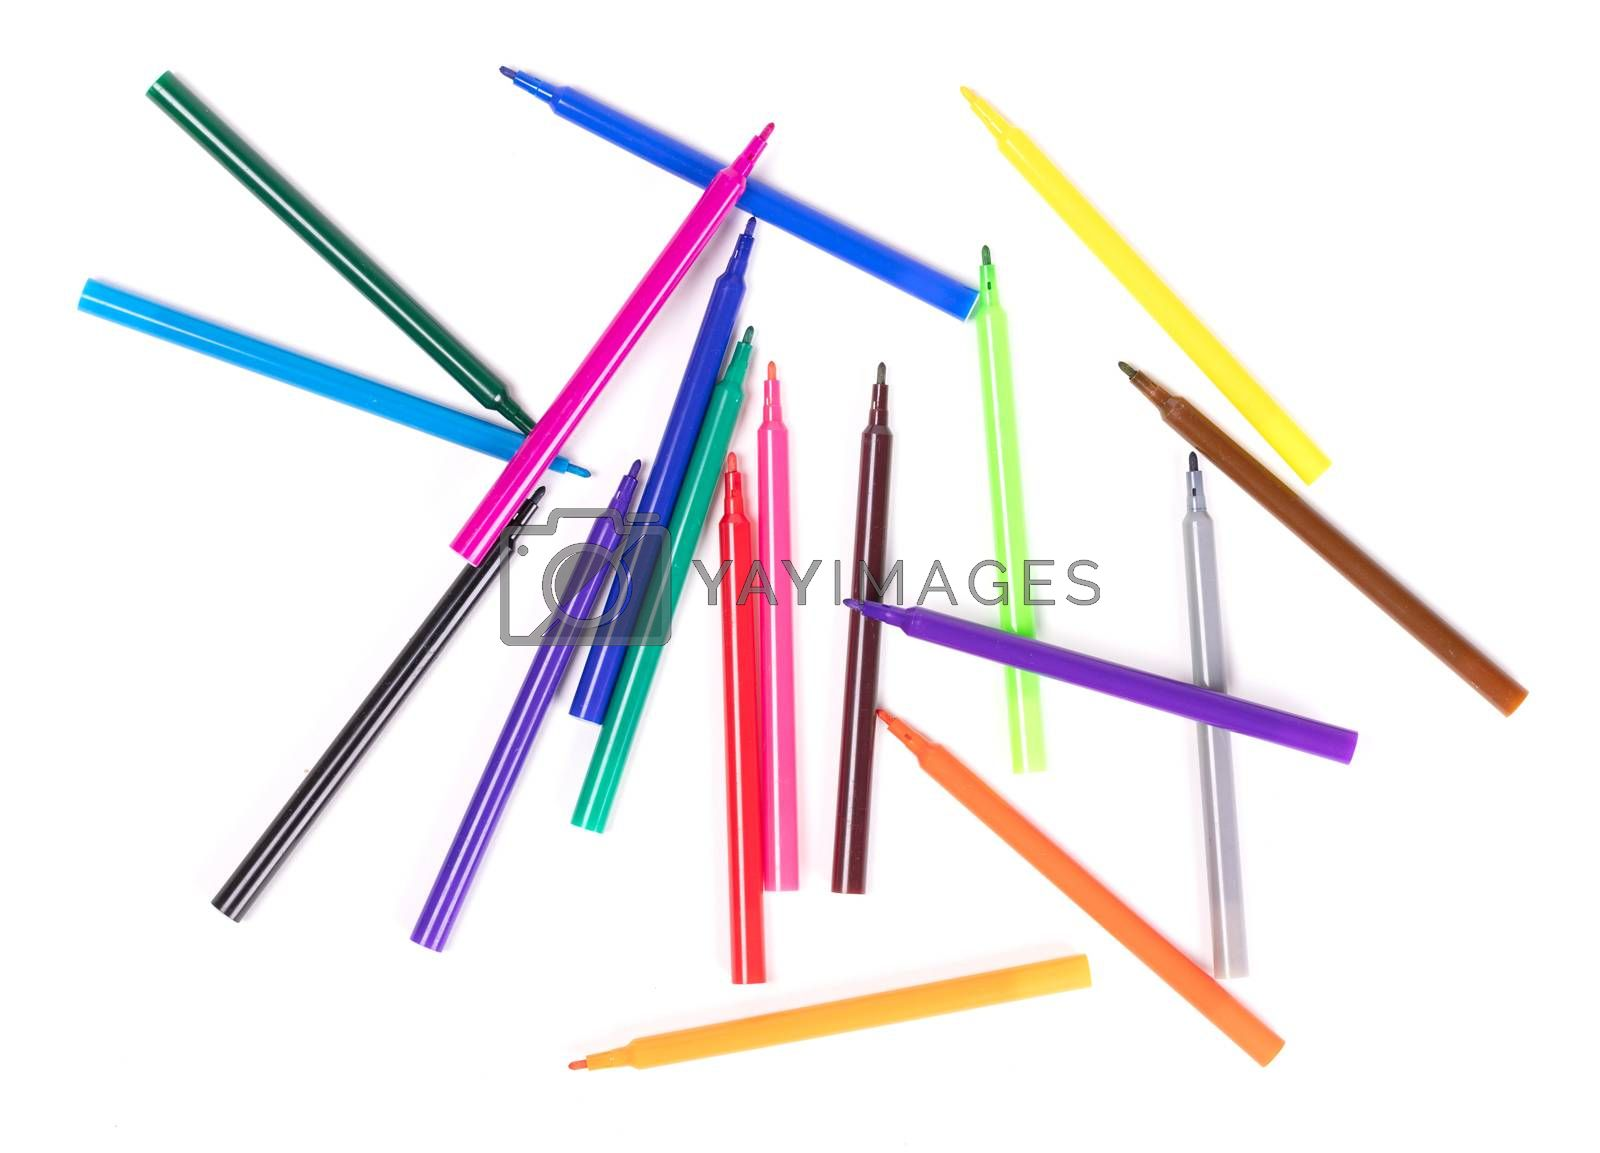 Collection of felt-tip pens isolated on white background